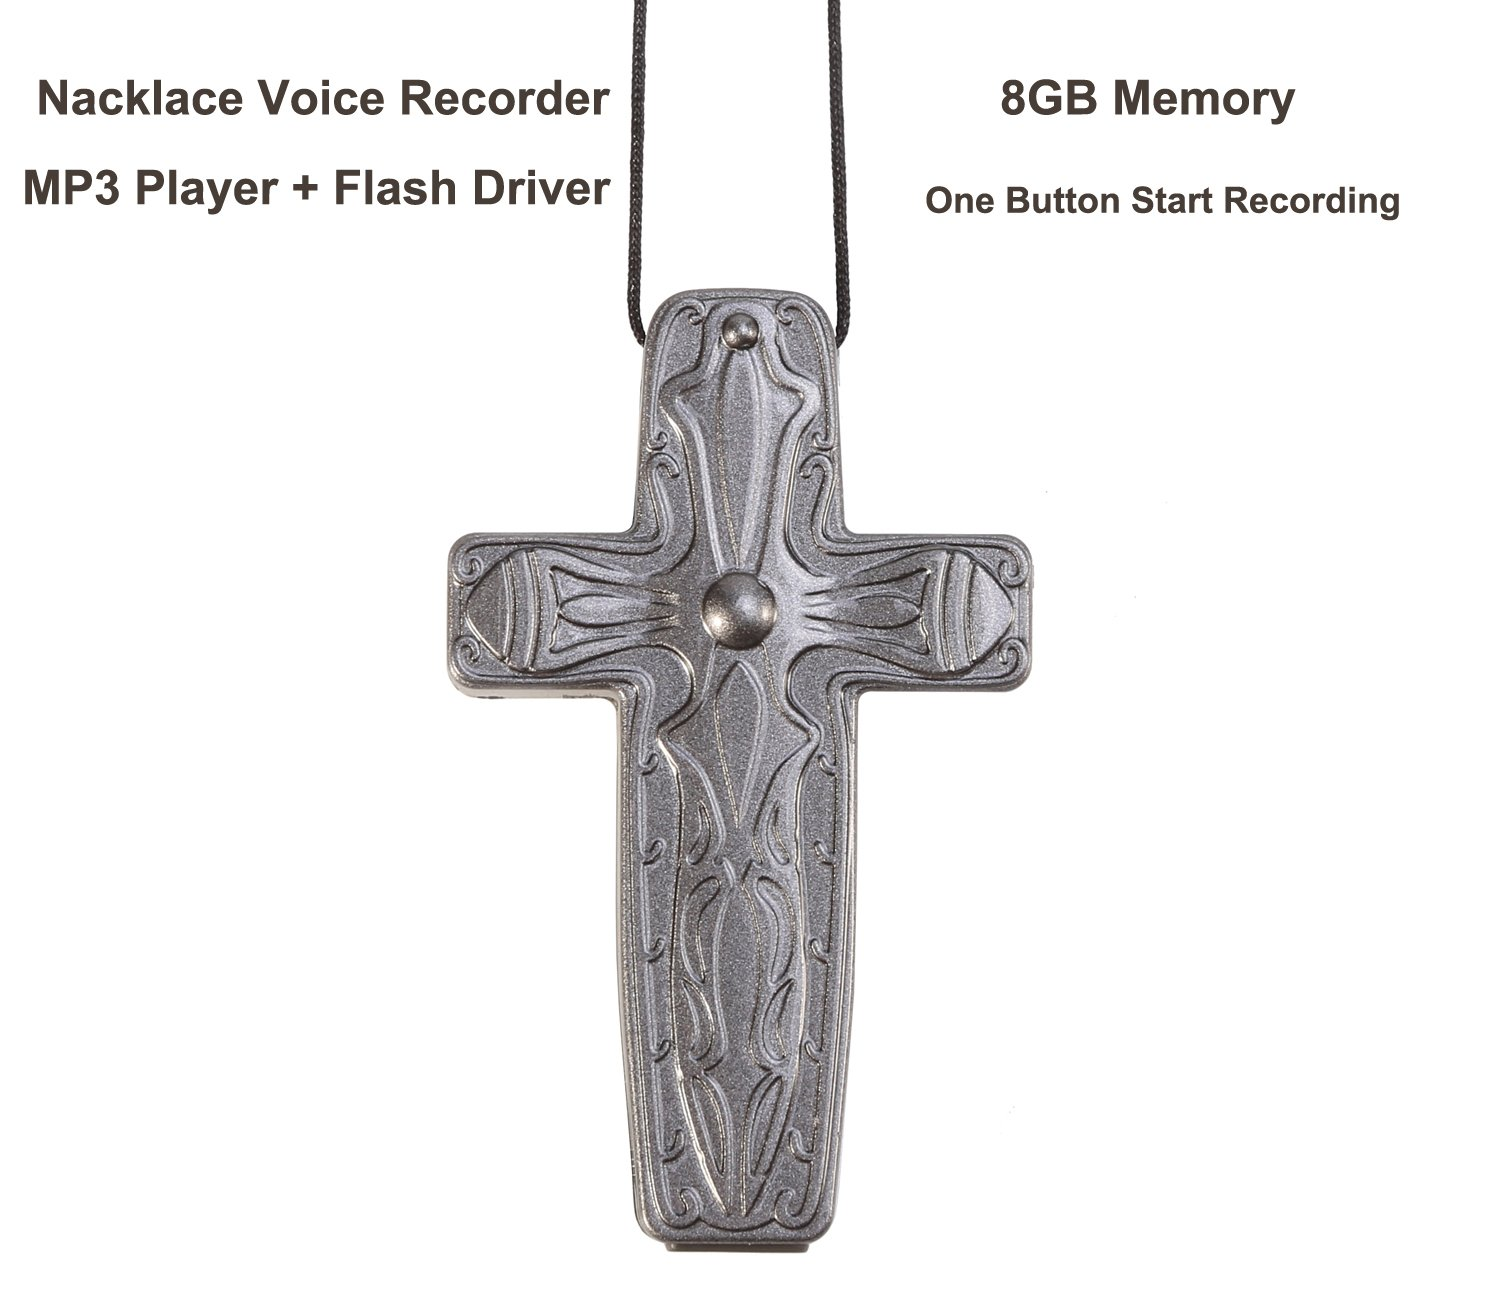 eoqo Necklace style Digital Audio Voice Recorder with USB Flash Driver and MP3 Player with 8GB memory